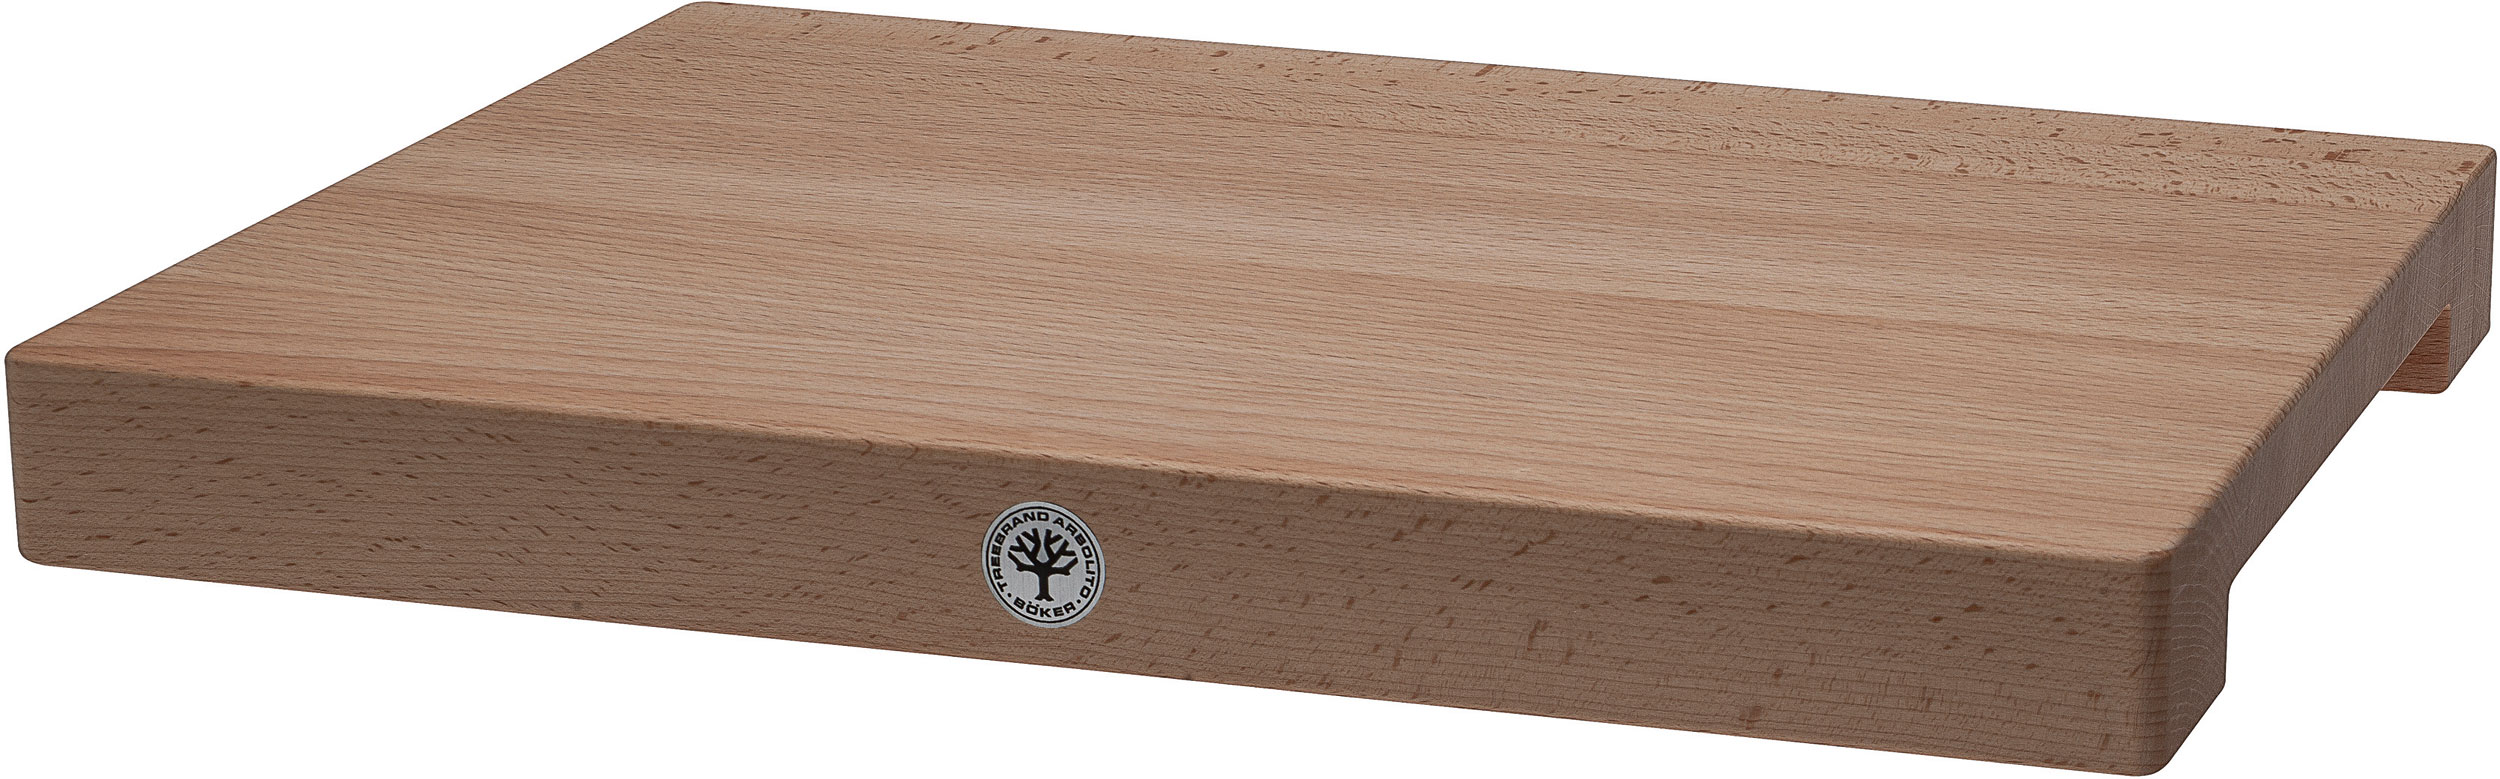 Buy Boker Cutting Boards at KnifeCenter